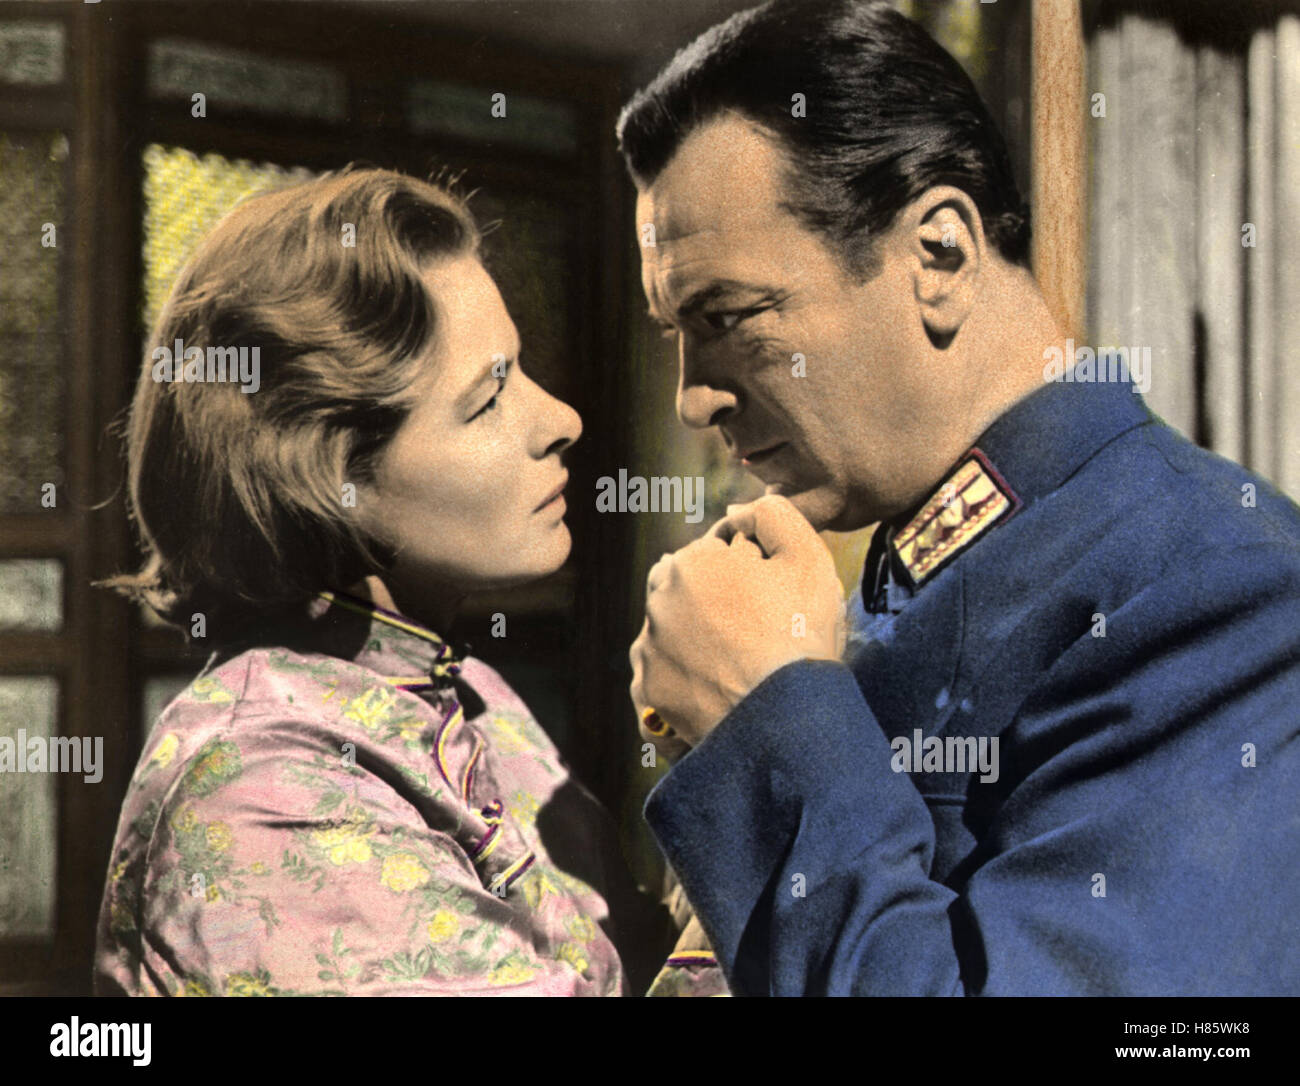 Die Herberge zur 6. Glückseligkeit, (THE INN OF THE 6TH HAPPINESS) USA 1958, Regie: Mark Robson, INGRID BERGMAN, Stock Photo